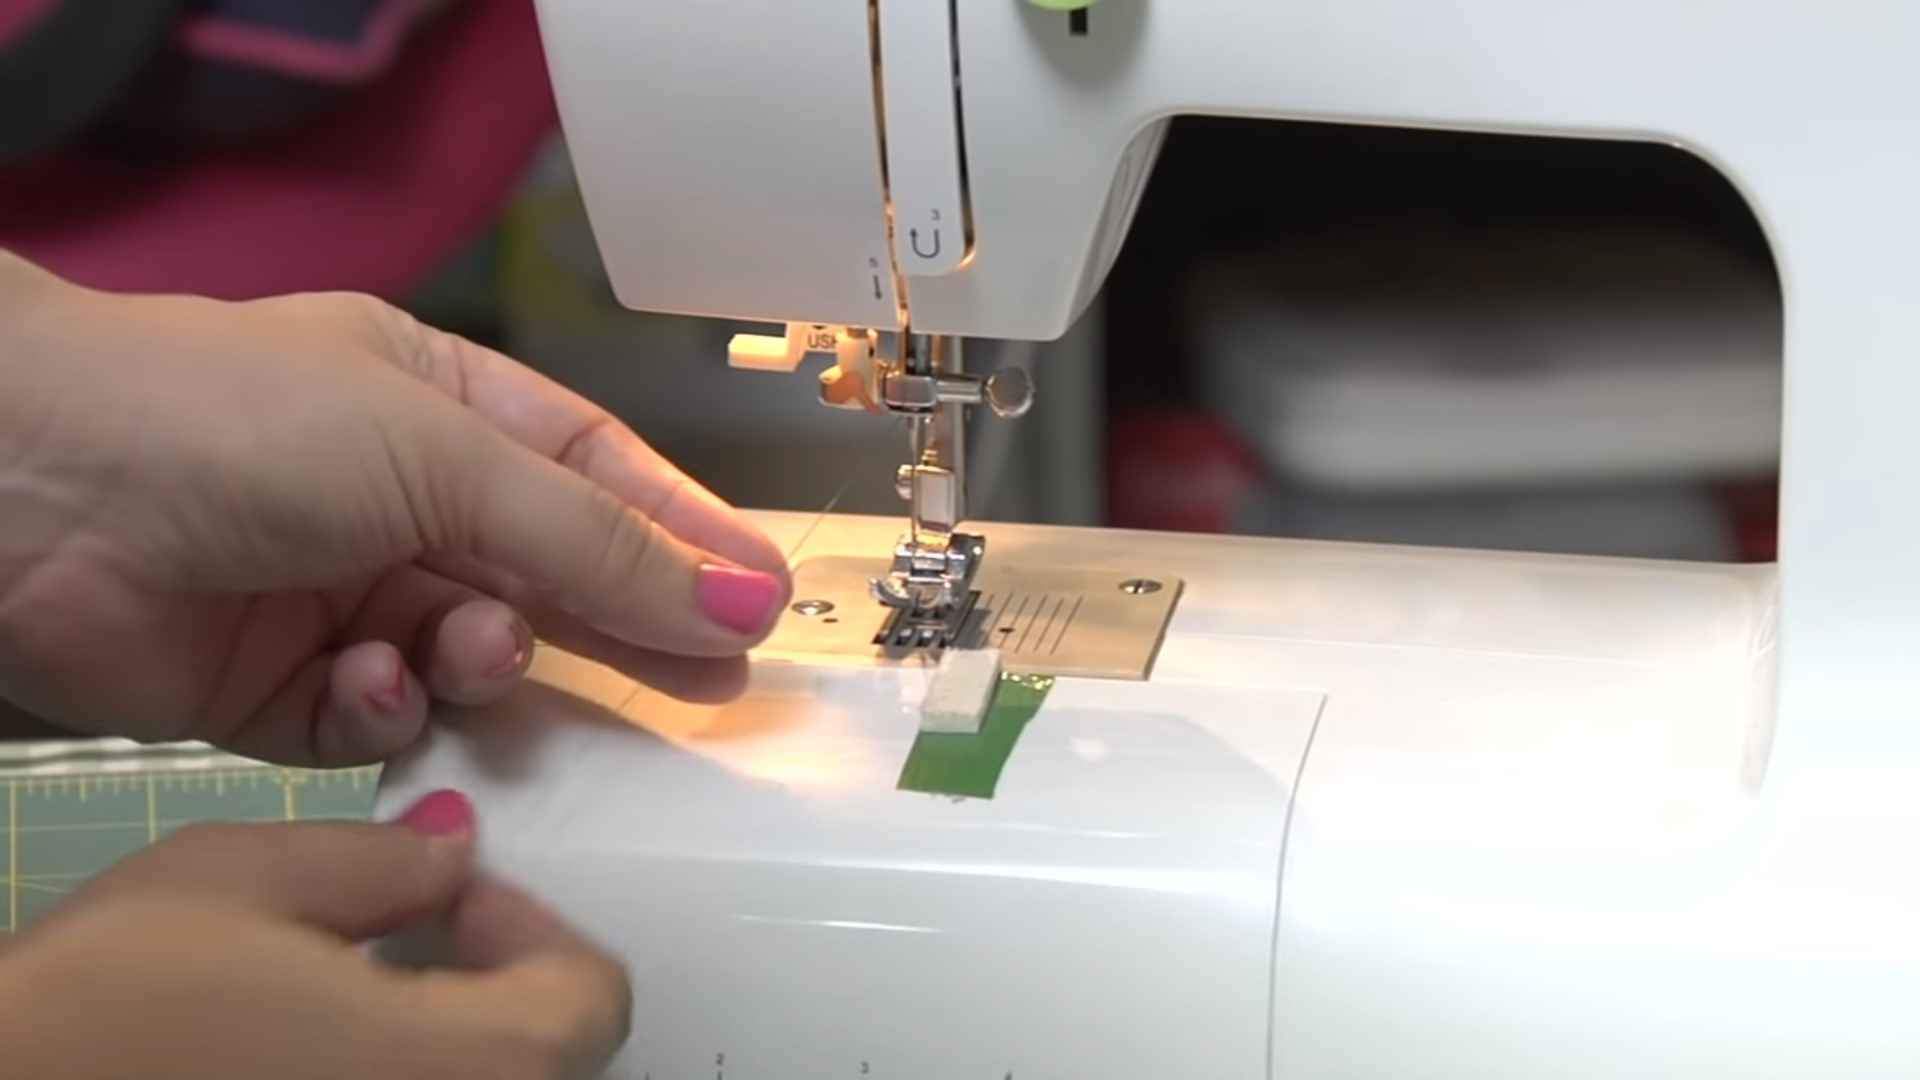 Placing the thread on the machine